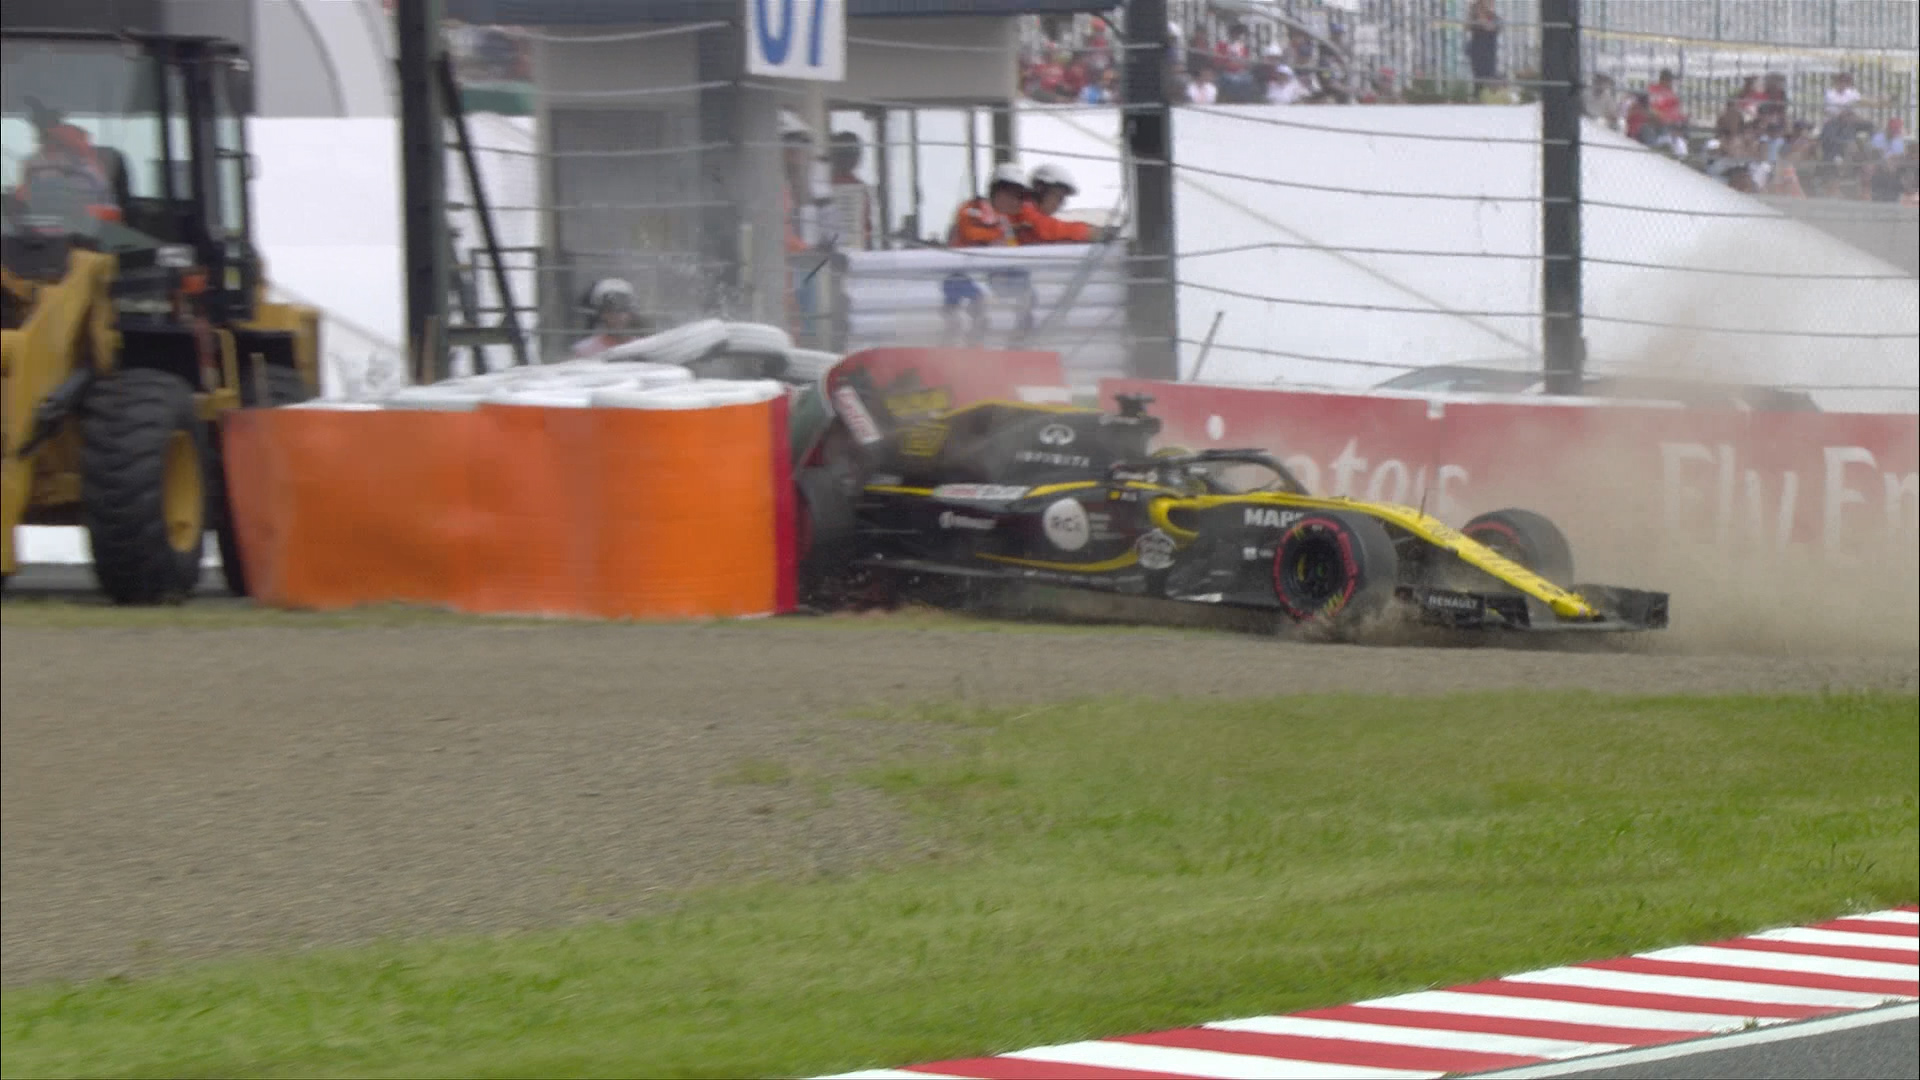 FP3: Hulkenberg brings out red flags after big impact with barriers